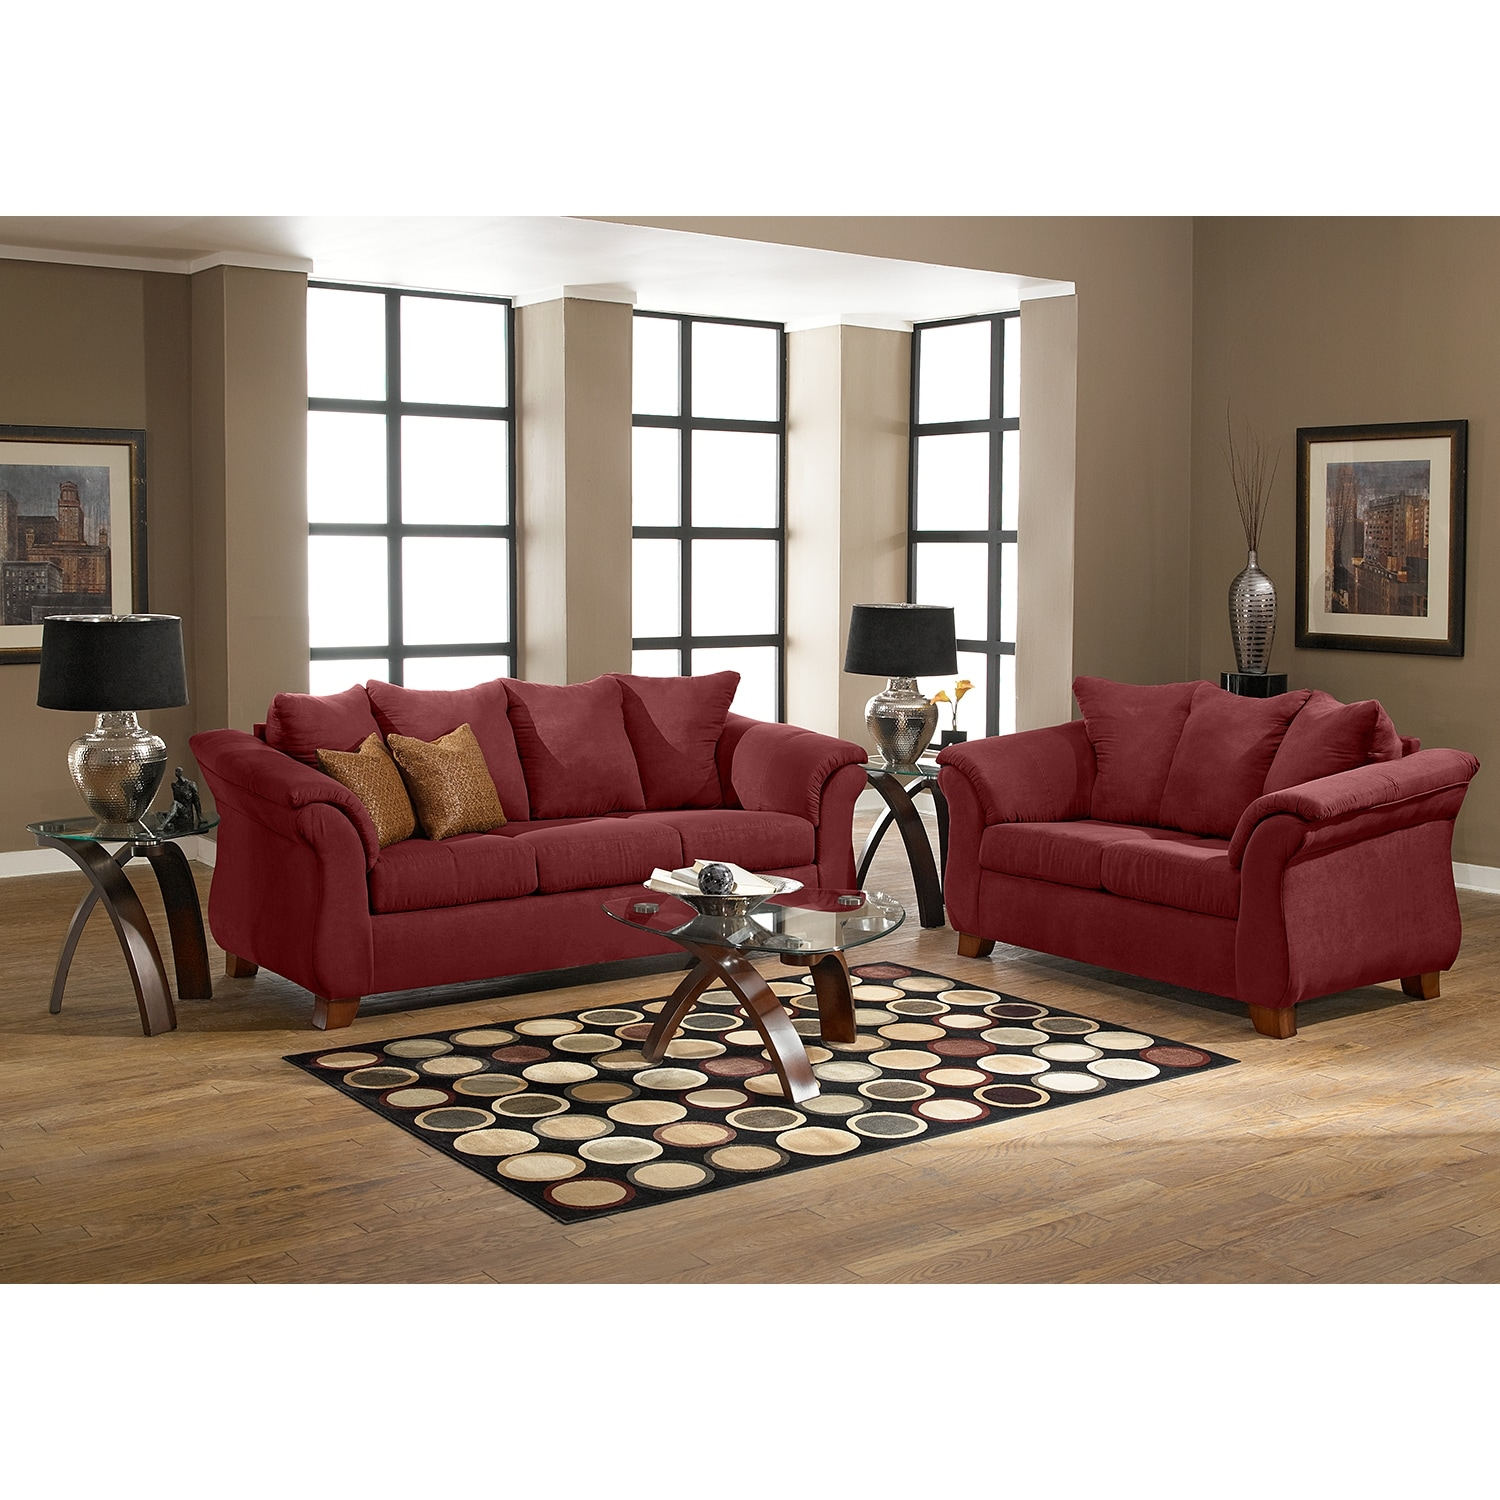 Adrian Sofa - Red | Value City Furniture